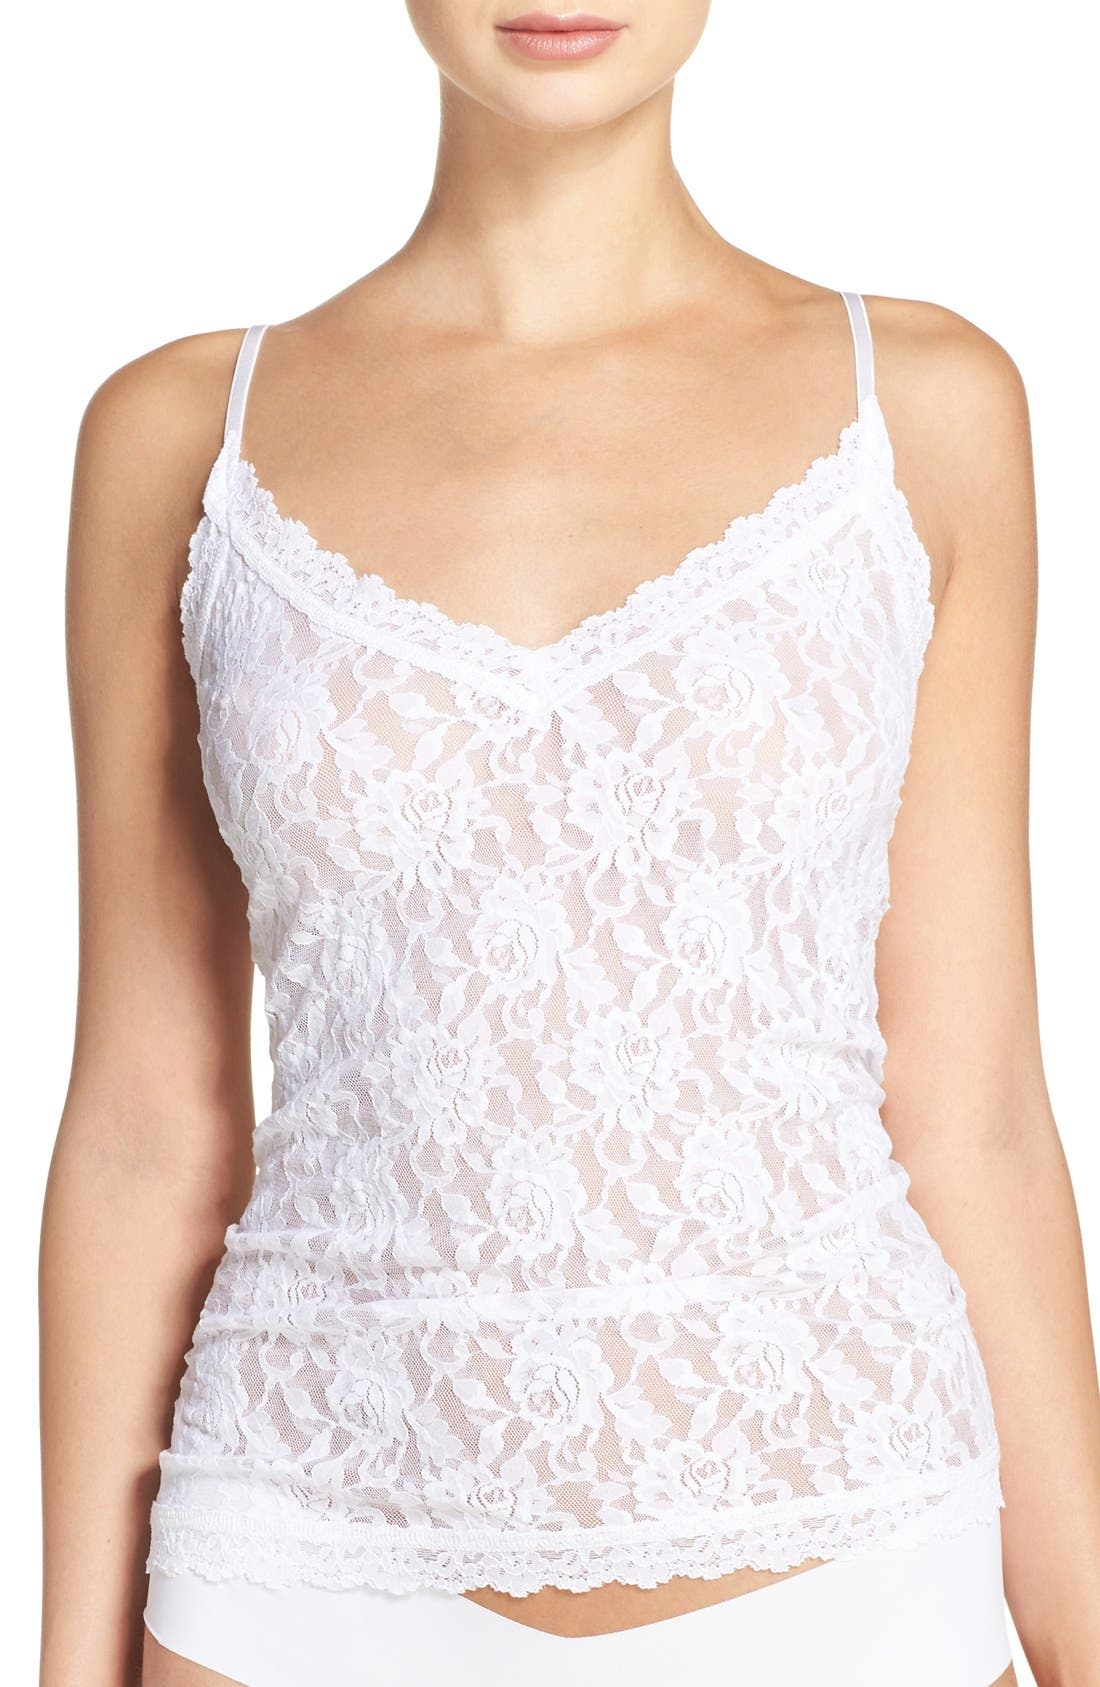 Alternate Image 1 Selected - Hanky Panky Lace Camisole